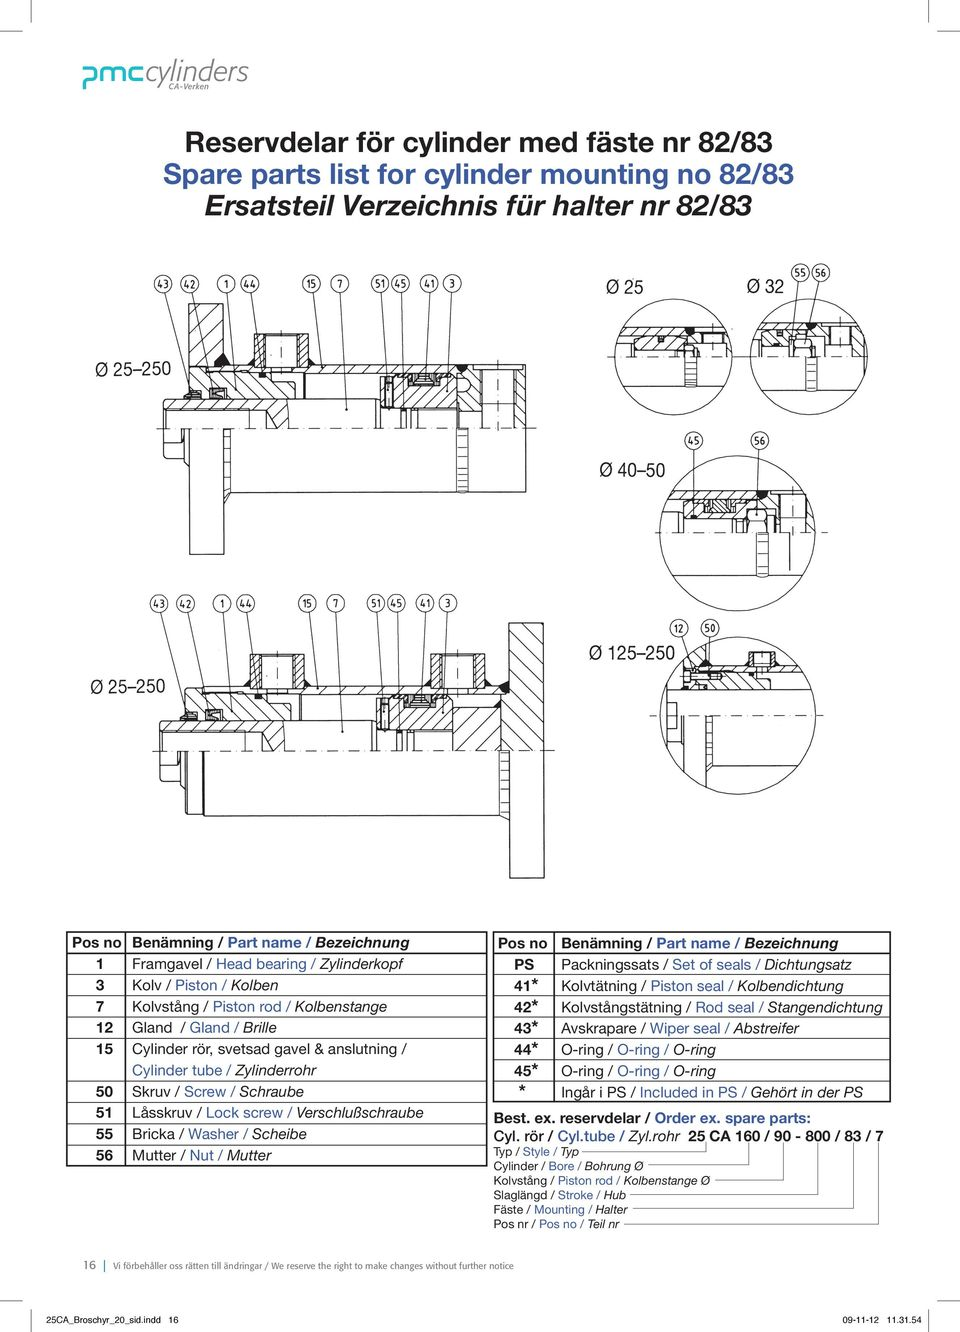 Schraube 51 Låsskruv / Lock screw / Verschlußschraube 55 Bricka / Washer / Scheibe 56 Mutter / Nut / Mutter Pos no benämning / Part name / Bezeichnung PS Packningssats / Set of seals / Dichtungsatz